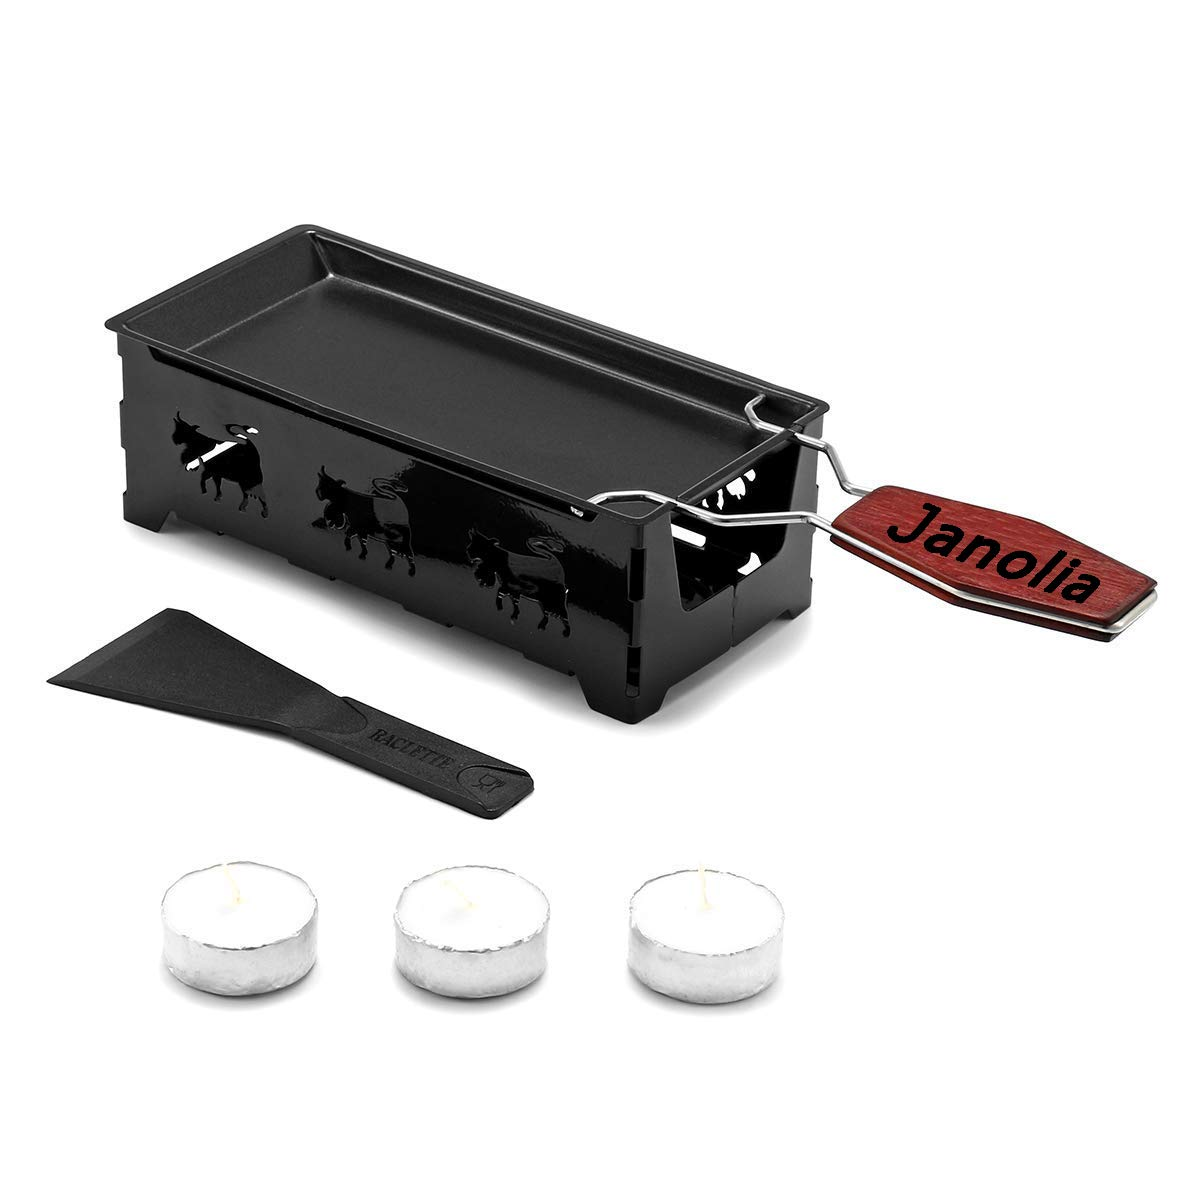 Janolia Non-Stick Raclette Grill Set, Mini Cheese Melting Pan with Foldable Wooden Handle, Cheese Spatula, Heated by Candlelight by Janolia